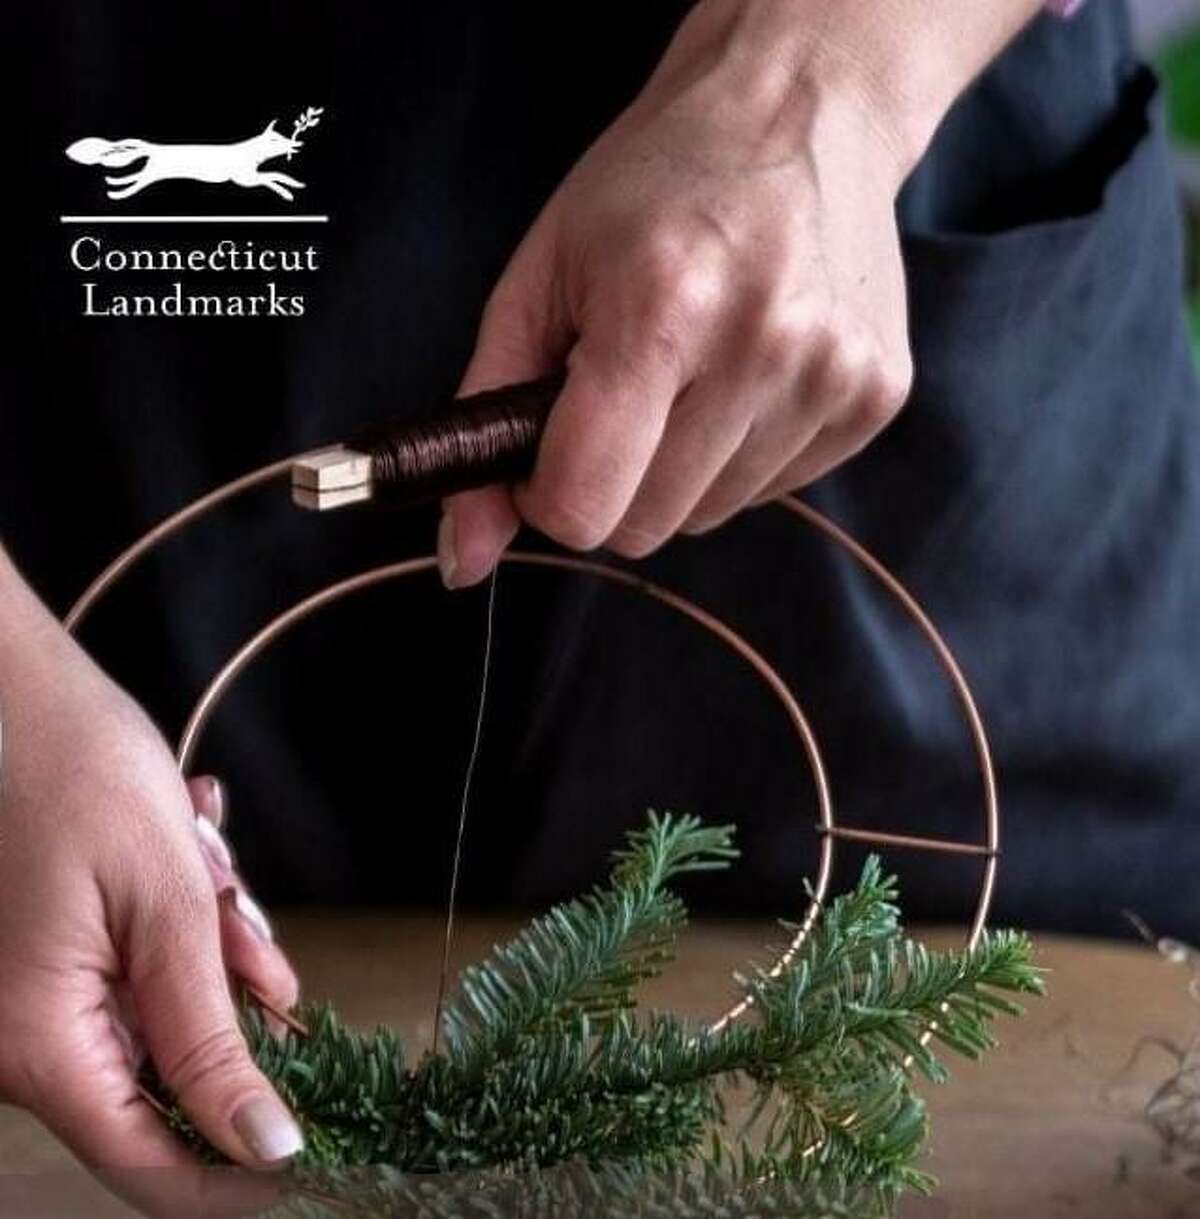 Connecticut Landmarks is leading a wreath-making workshop in a Zoom session.